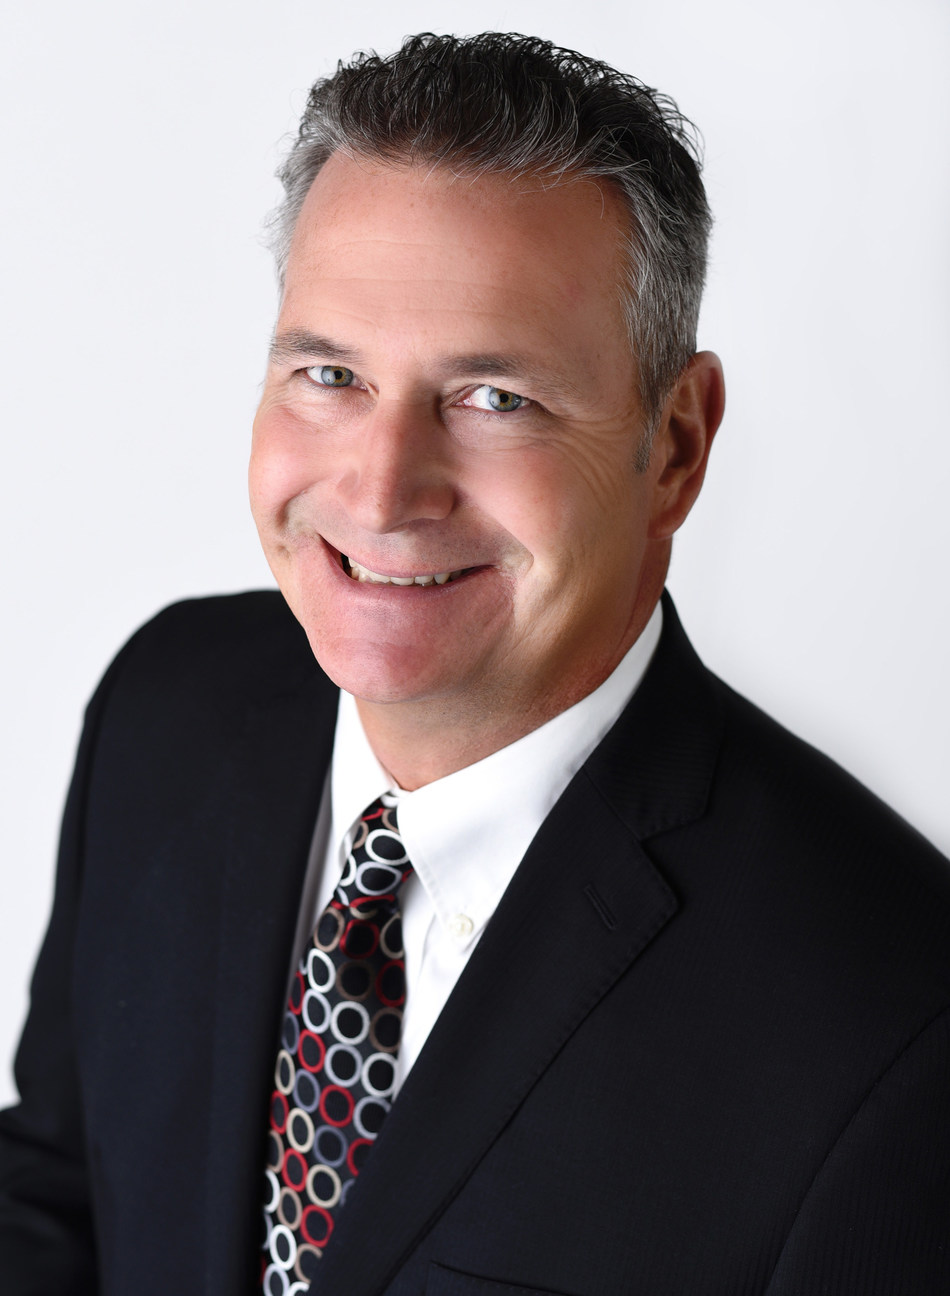 Jon Gingrich has been named Senior Vice President of Sales for SageSure Insurance Managers.